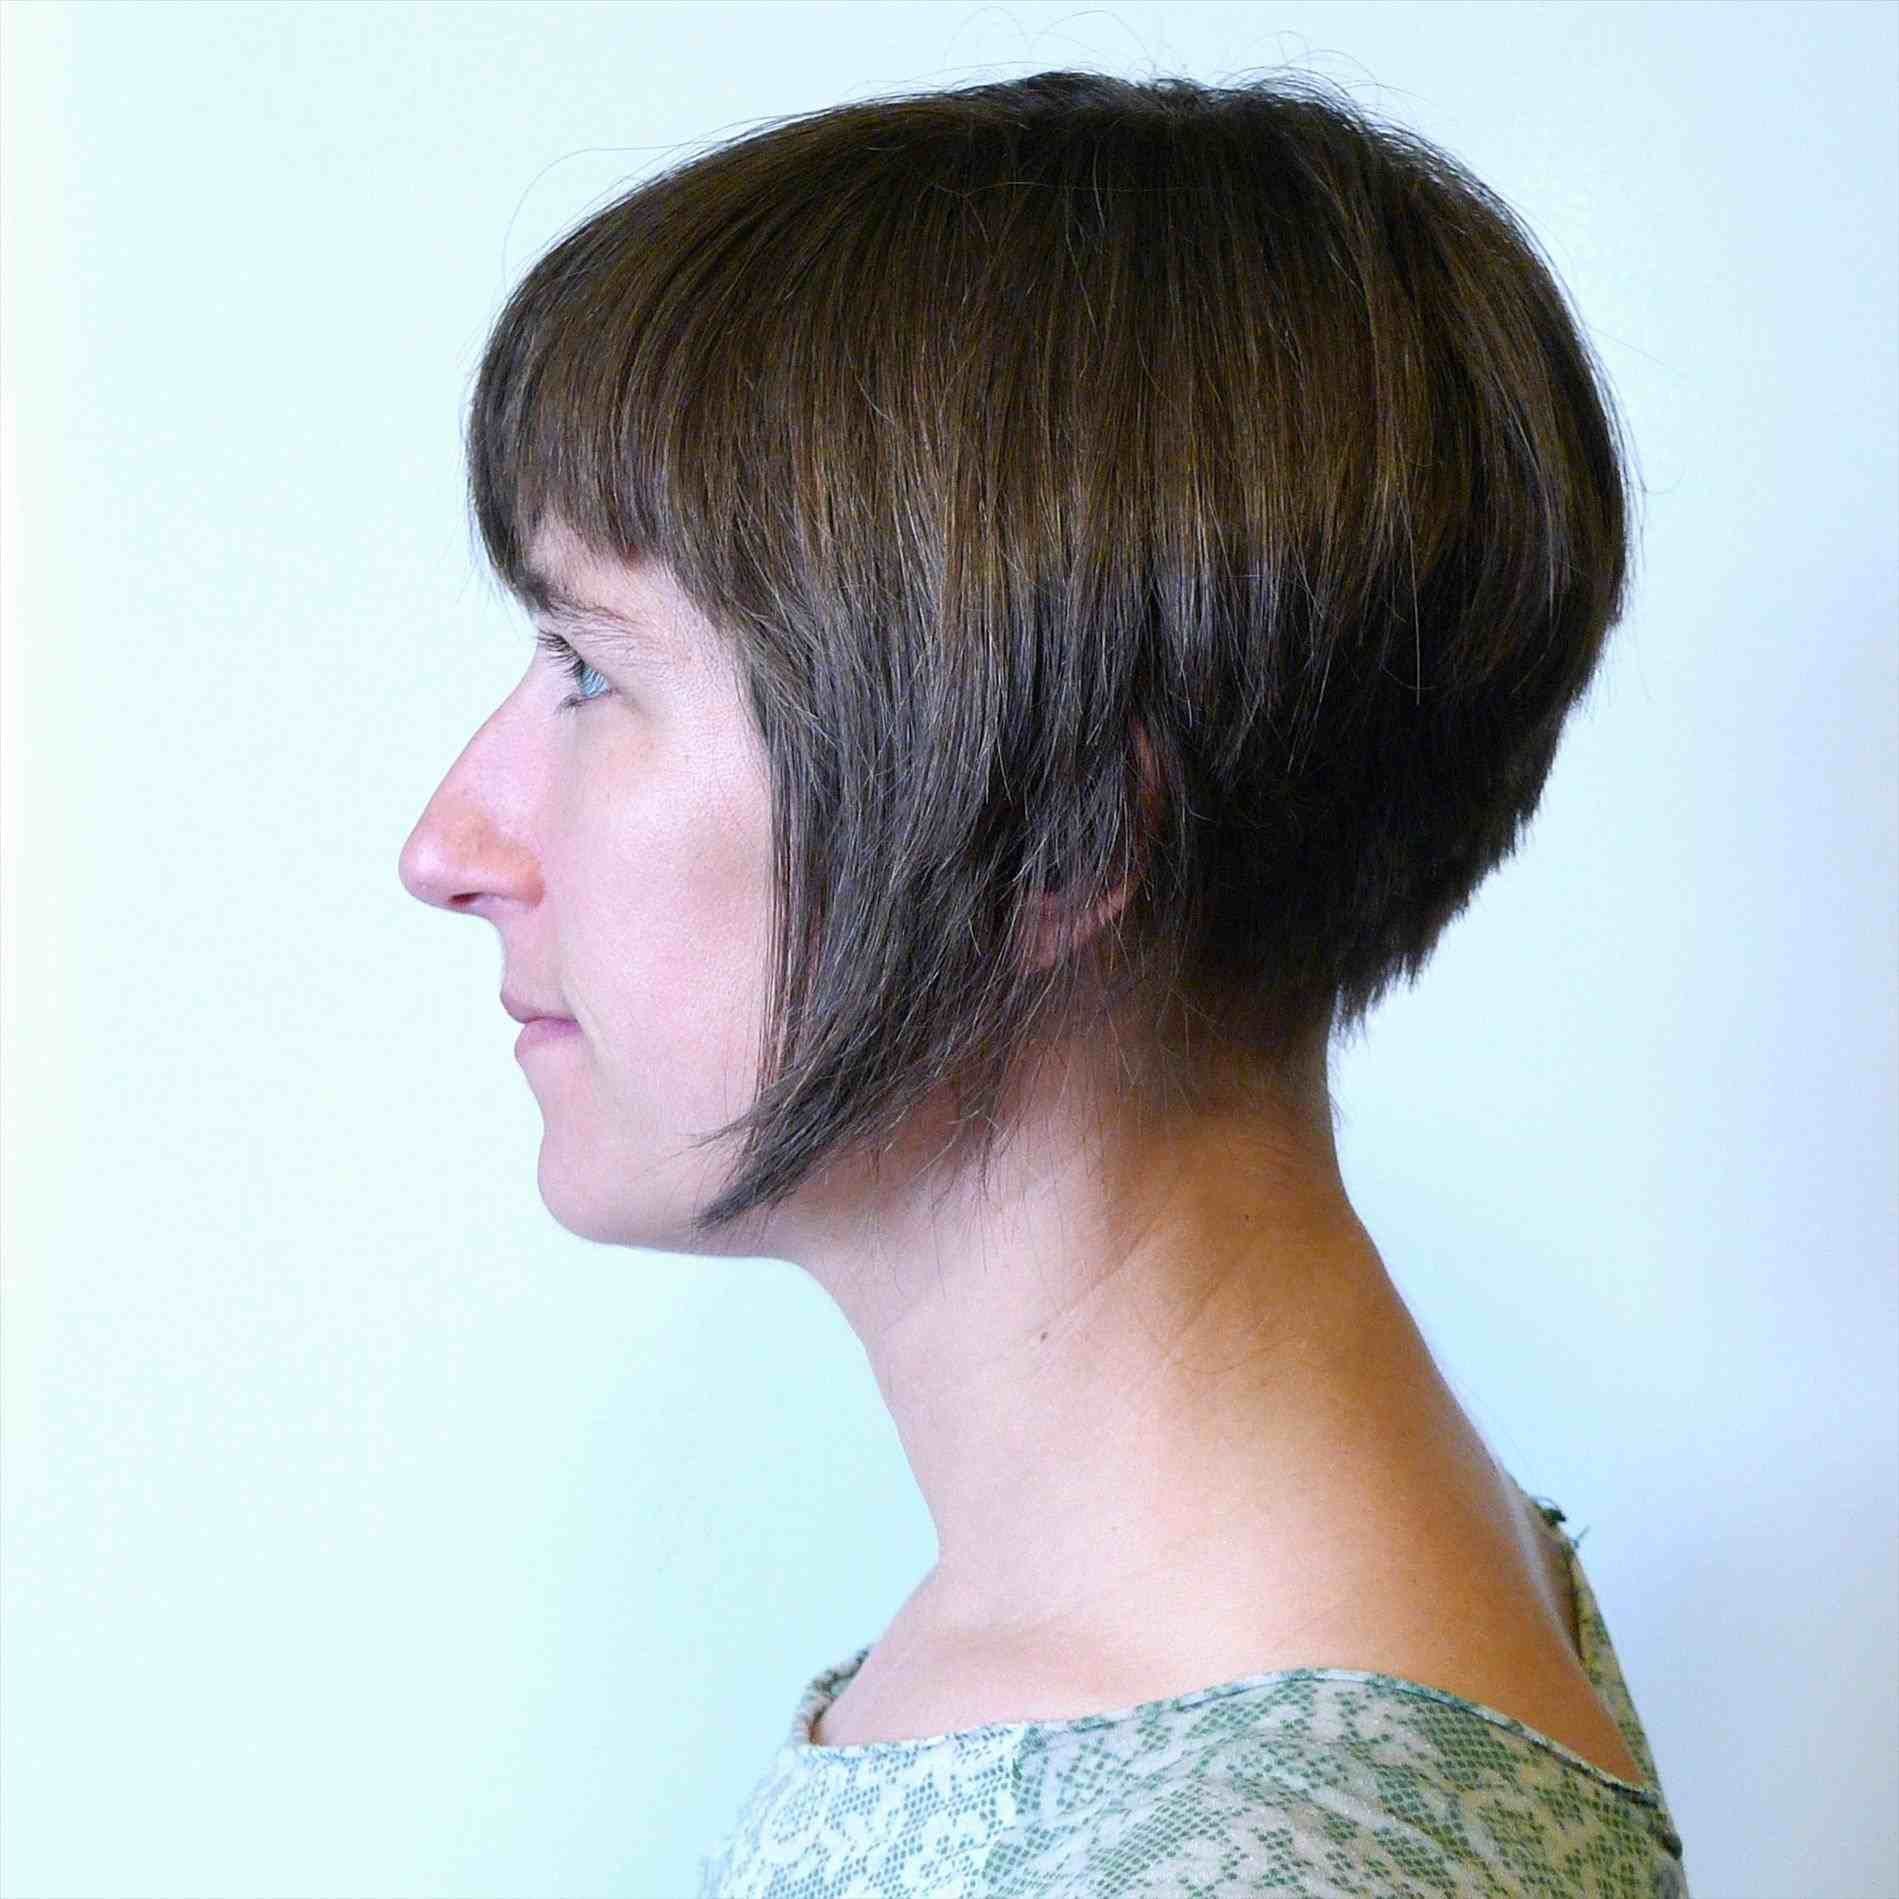 Haircut gallery ideas for women and man cute short haircuts color